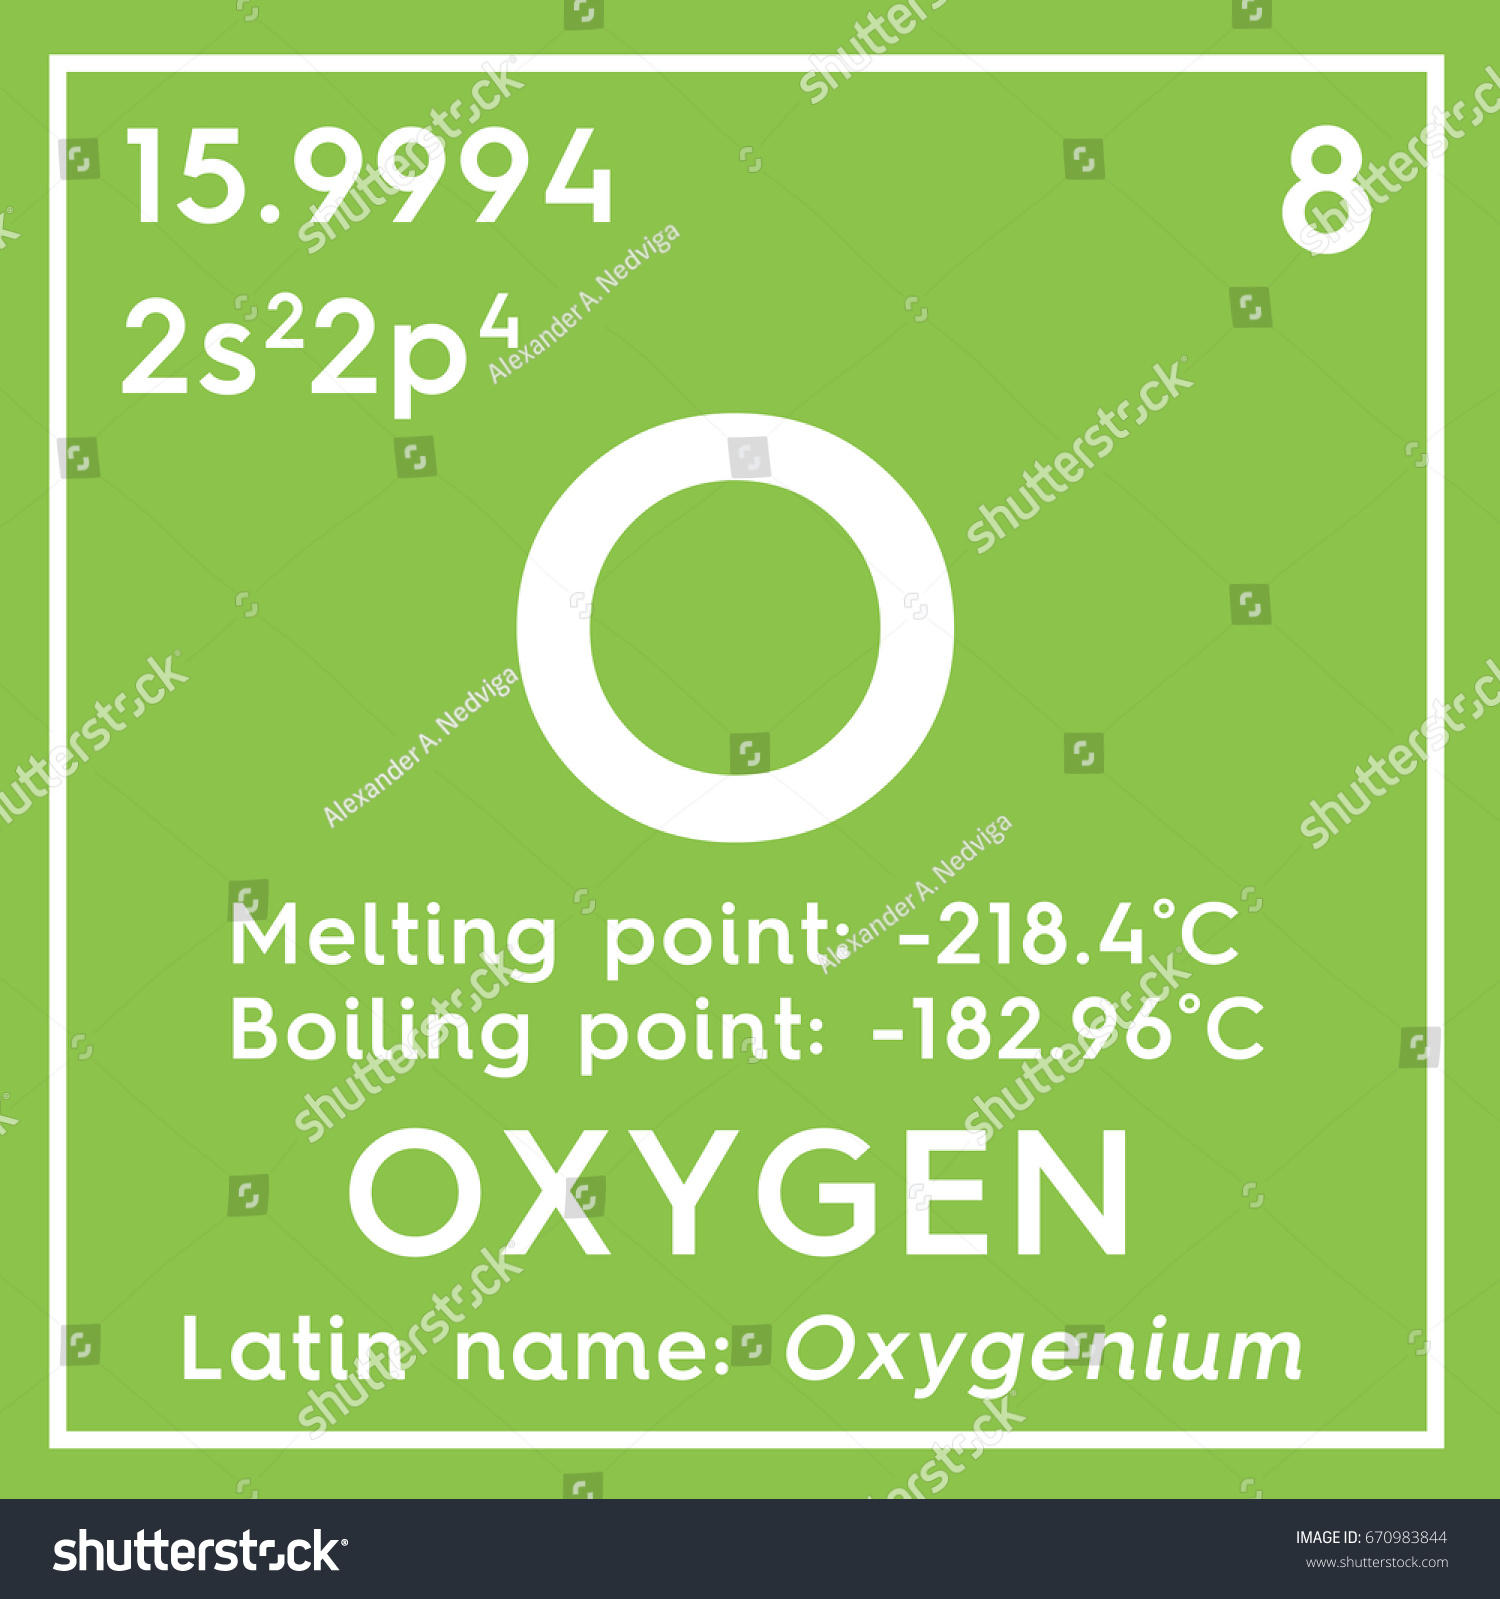 Oxygen periodic table image collections periodic table images oxygen other nonmetals chemical element mendeleevs stock oxygen other nonmetals chemical element of mendeleevs periodic table gamestrikefo Images